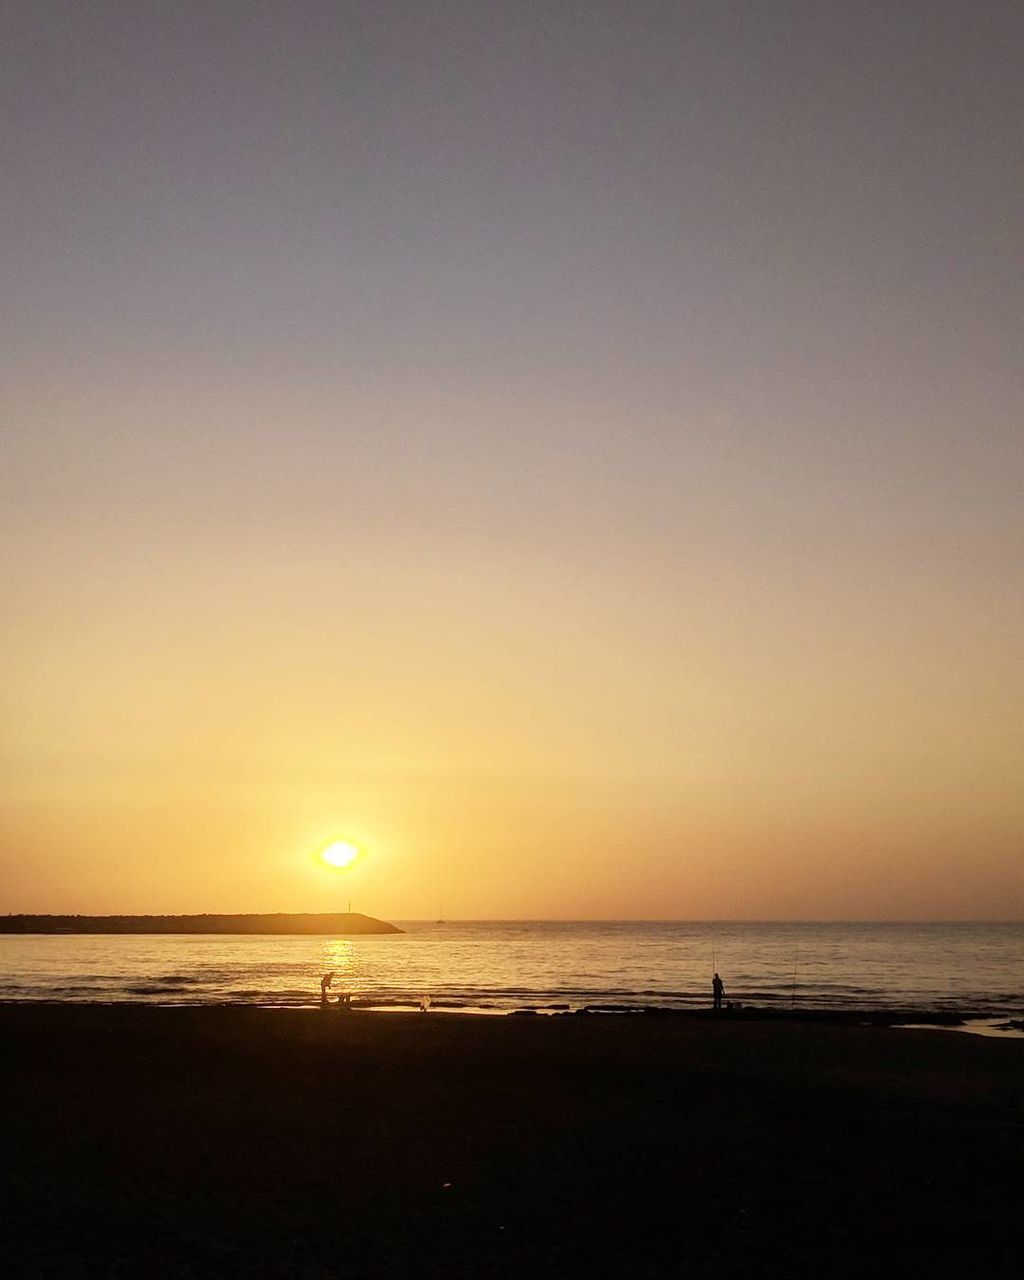 sunset, sea, silhouette, beach, nature, scenics, beauty in nature, horizon over water, tranquil scene, water, tranquility, sun, sky, outdoors, vacations, no people